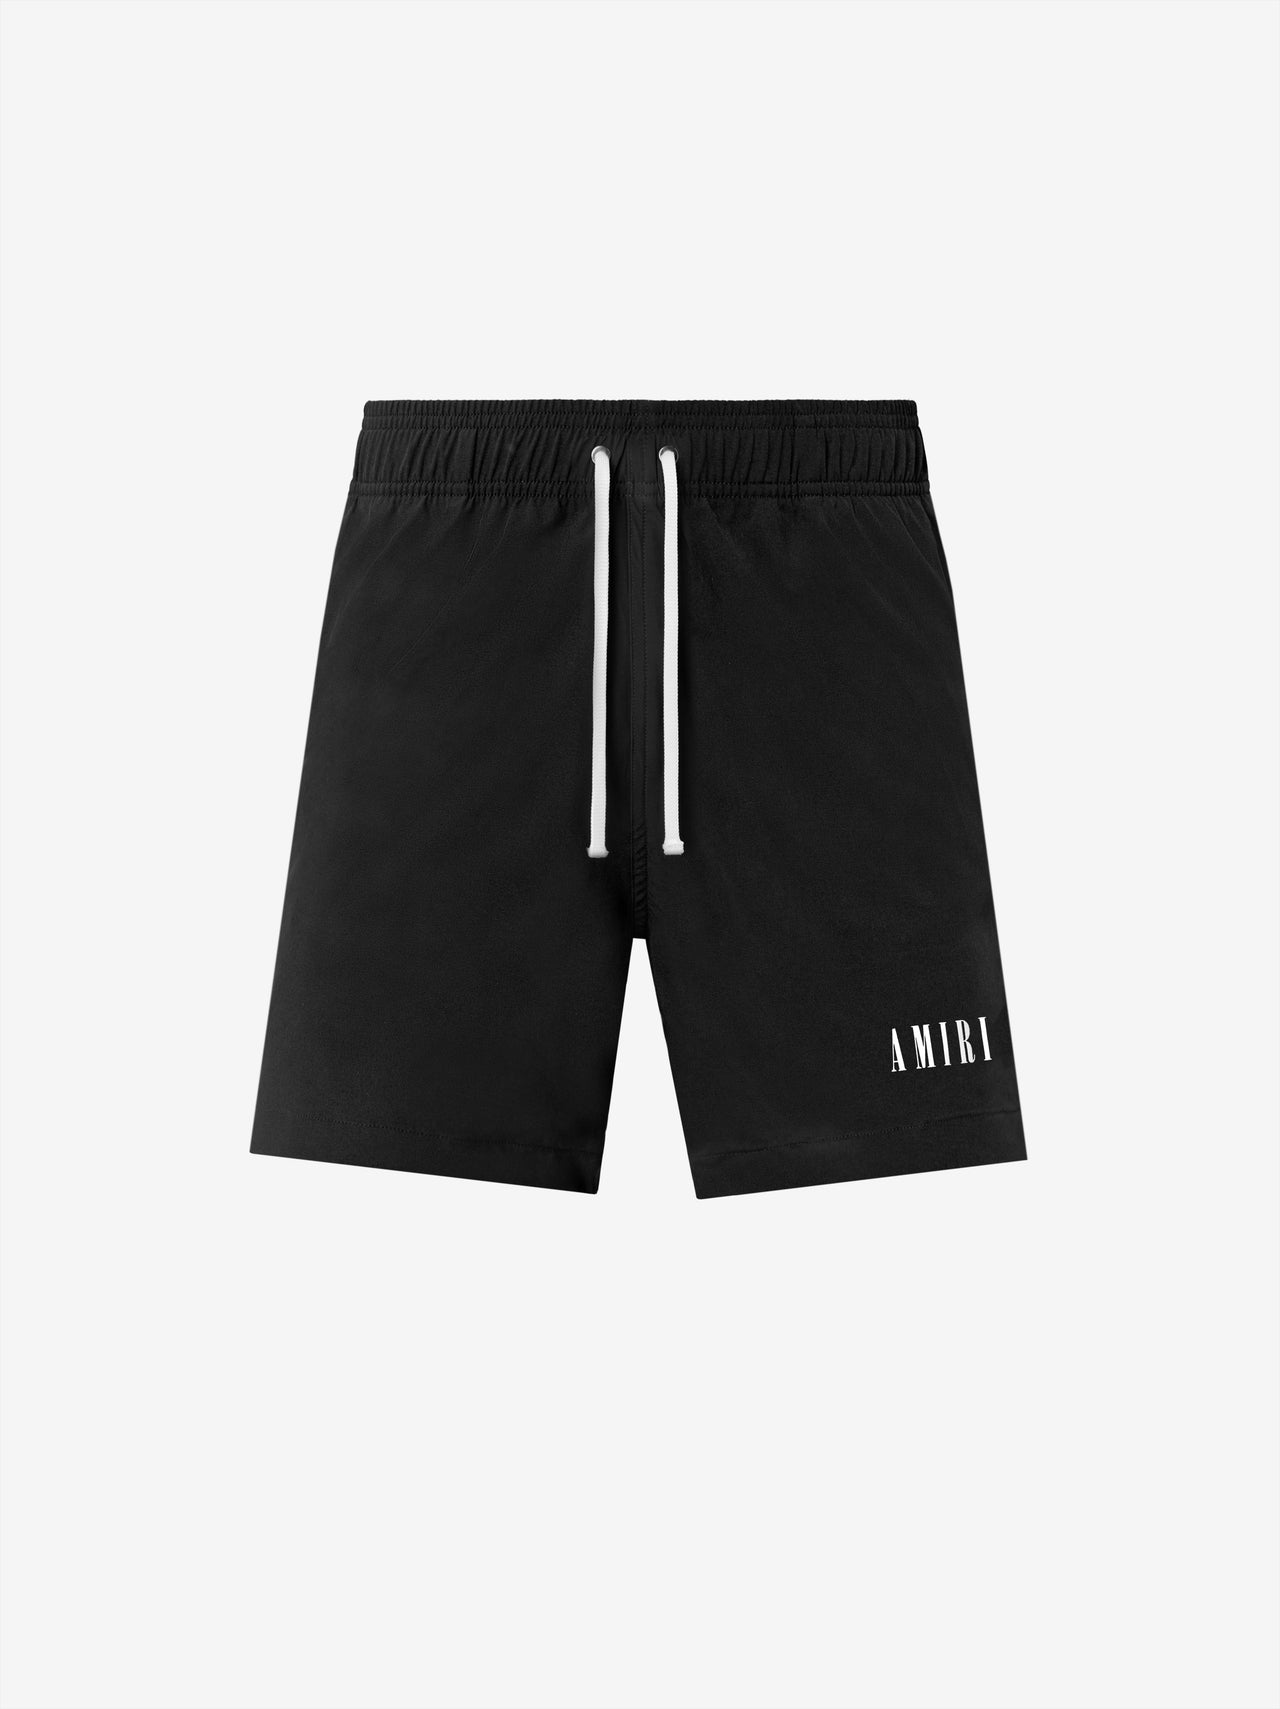 AMIRI LOGO SWIM TRUNK - BLACK